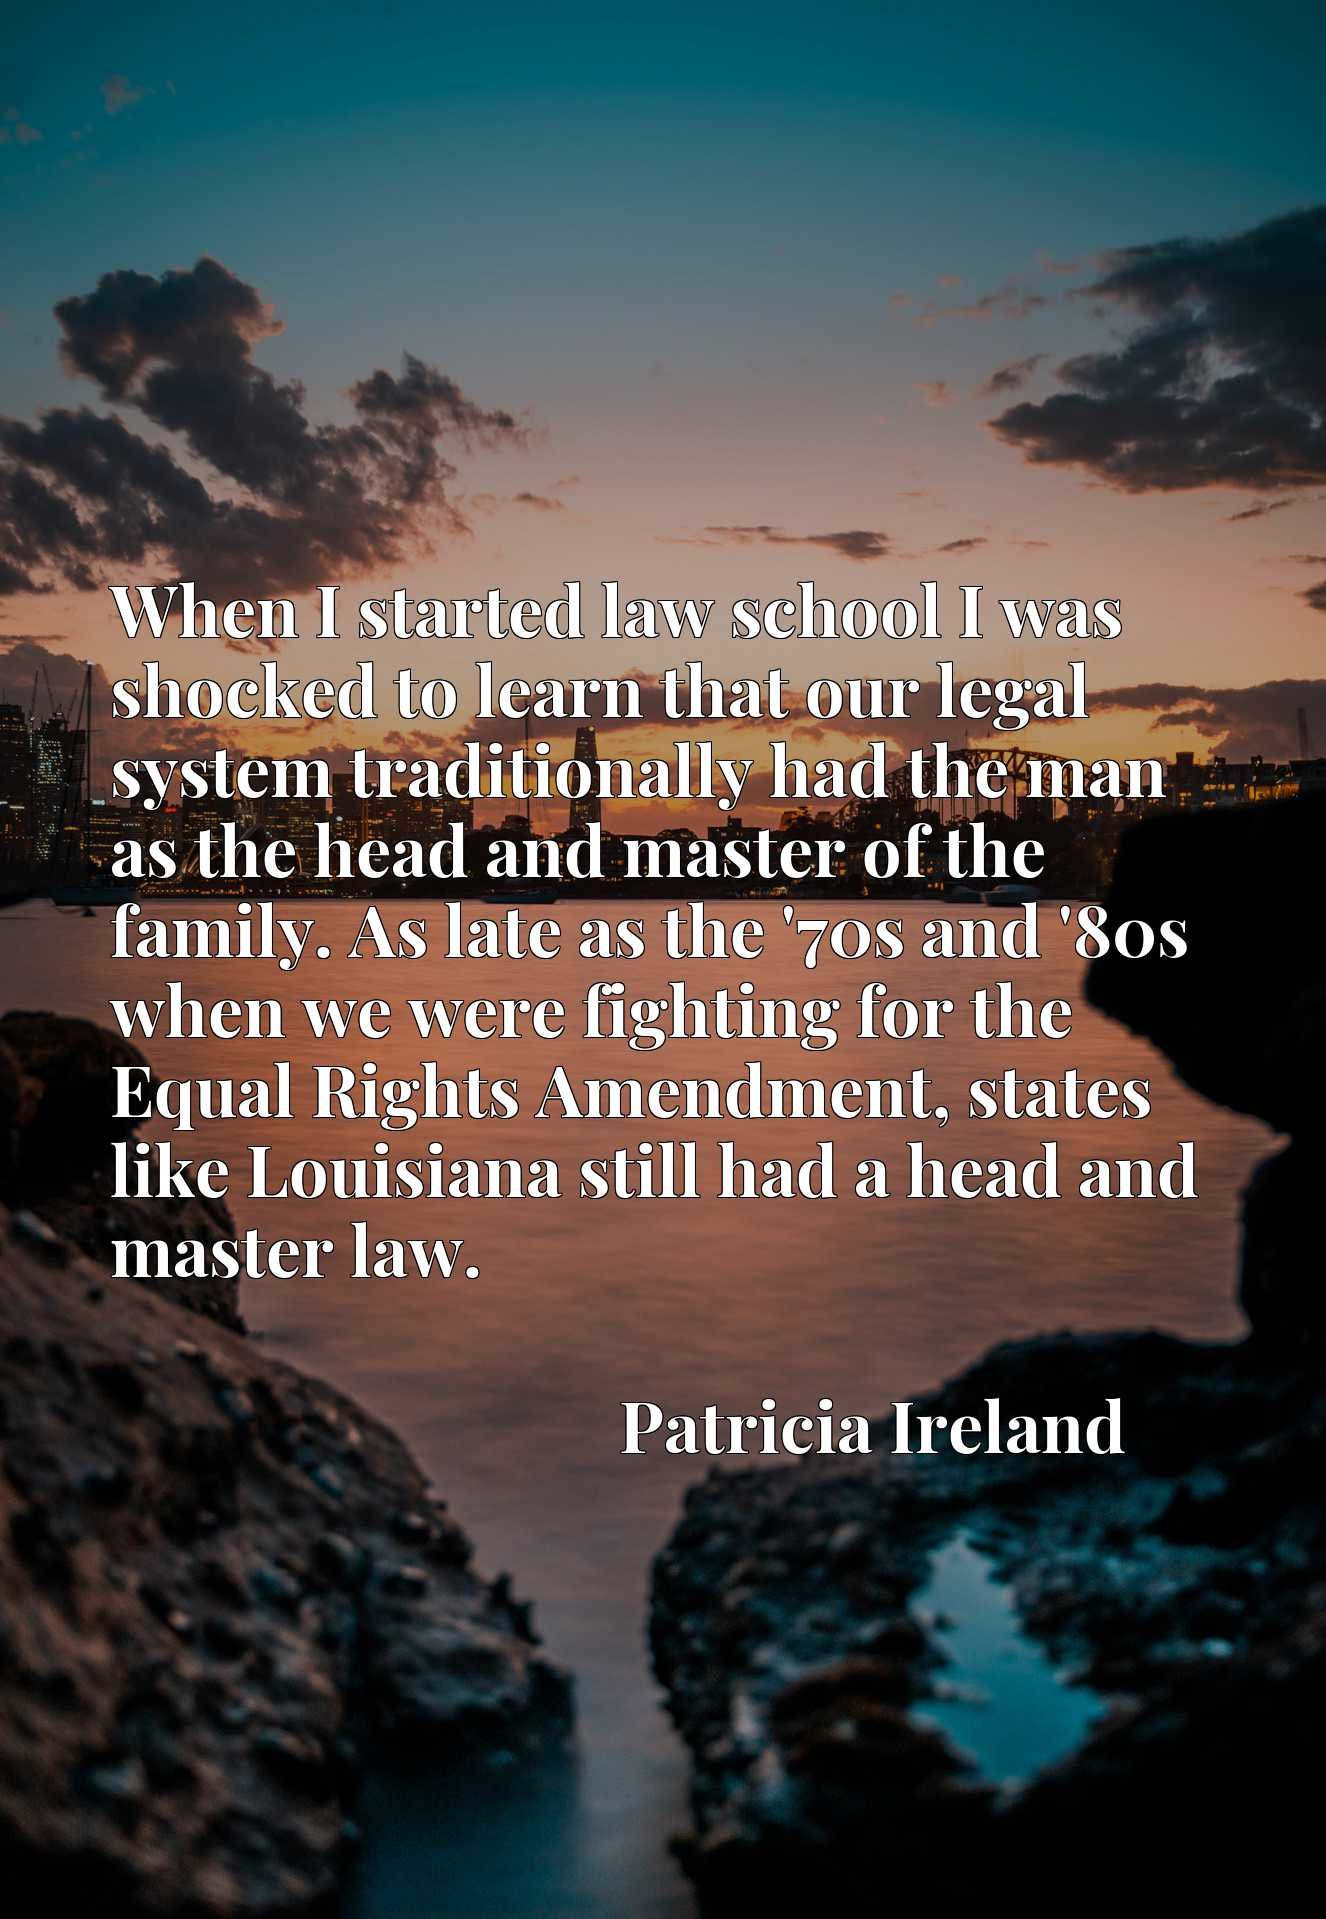 When I started law school I was shocked to learn that our legal system traditionally had the man as the head and master of the family. As late as the '70s and '80s when we were fighting for the Equal Rights Amendment, states like Louisiana still had a head and master law.